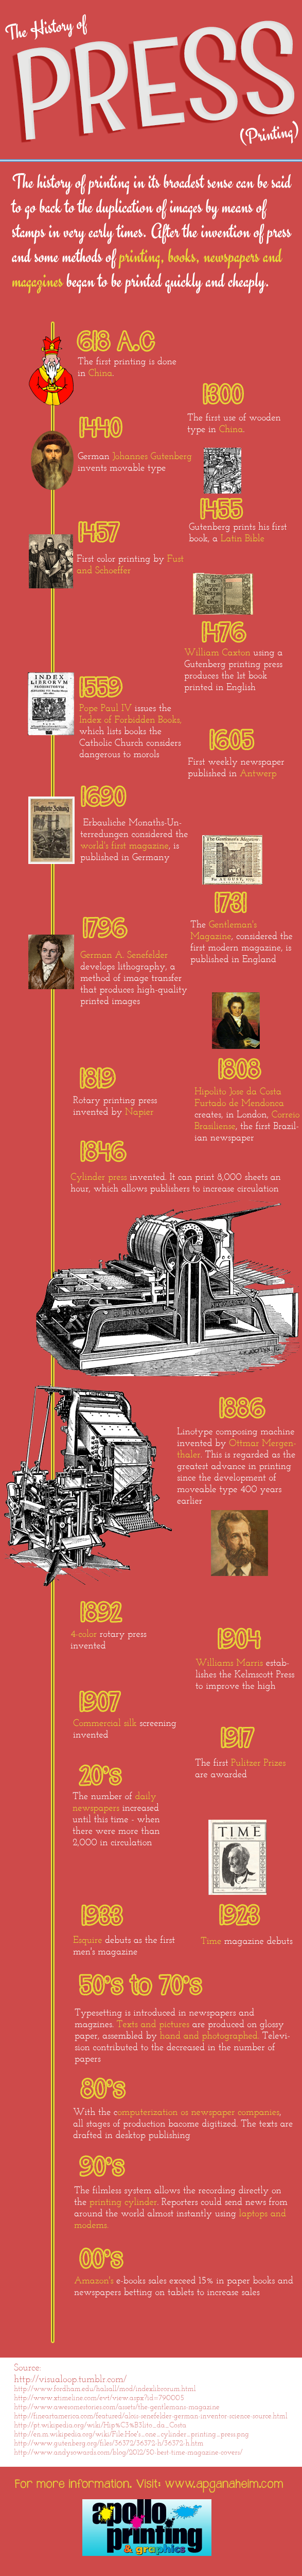 The History Of Press Printing